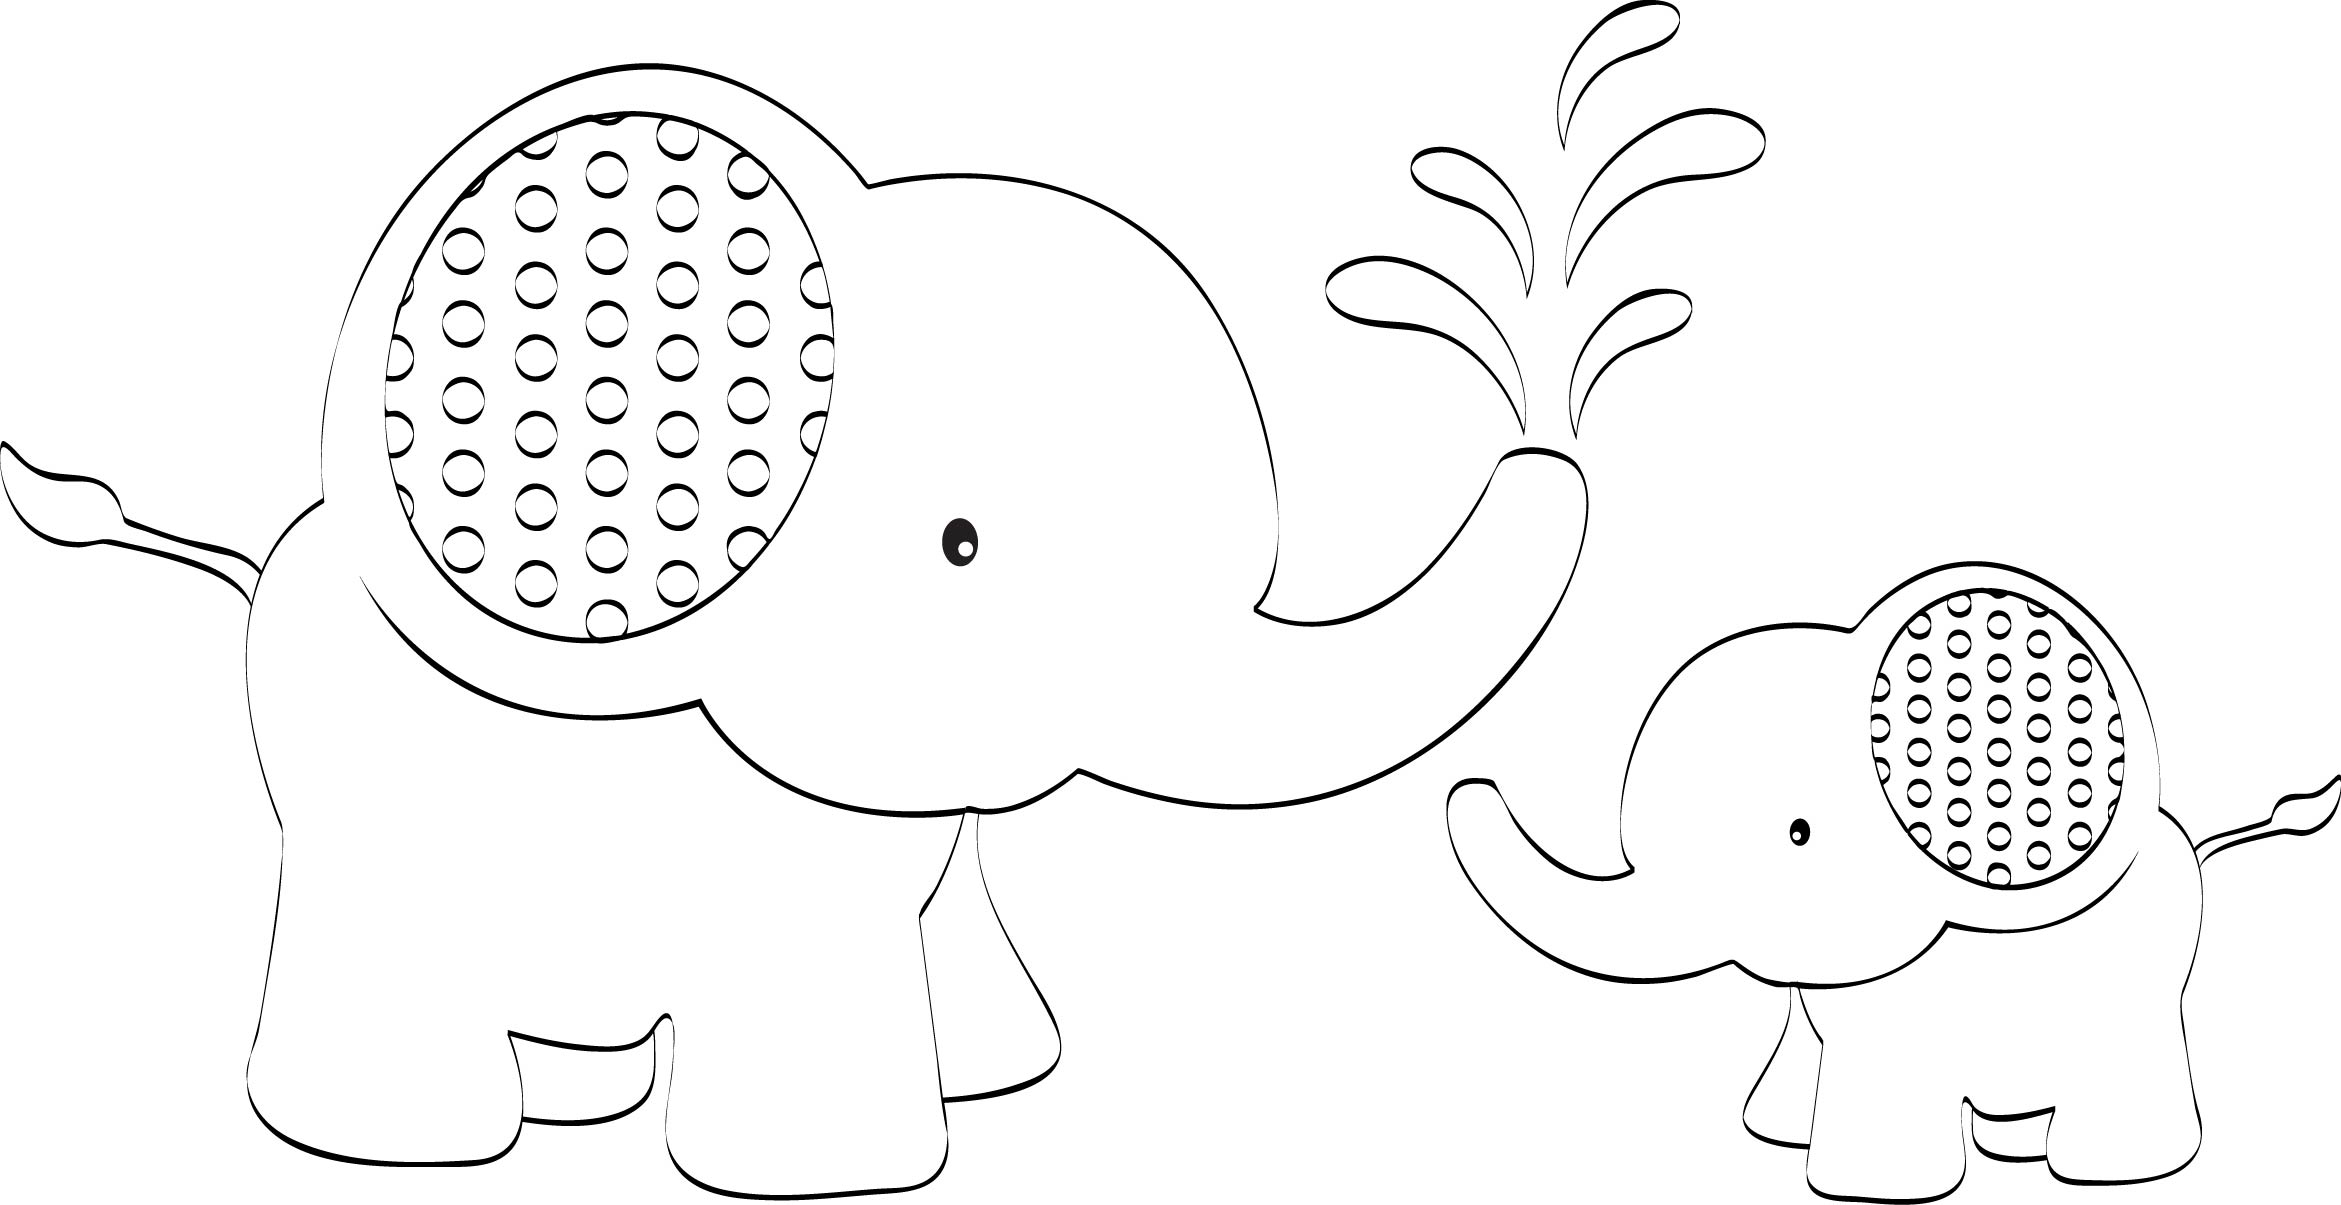 6 Best Images of Elephant Outline Printable - Elephant ...